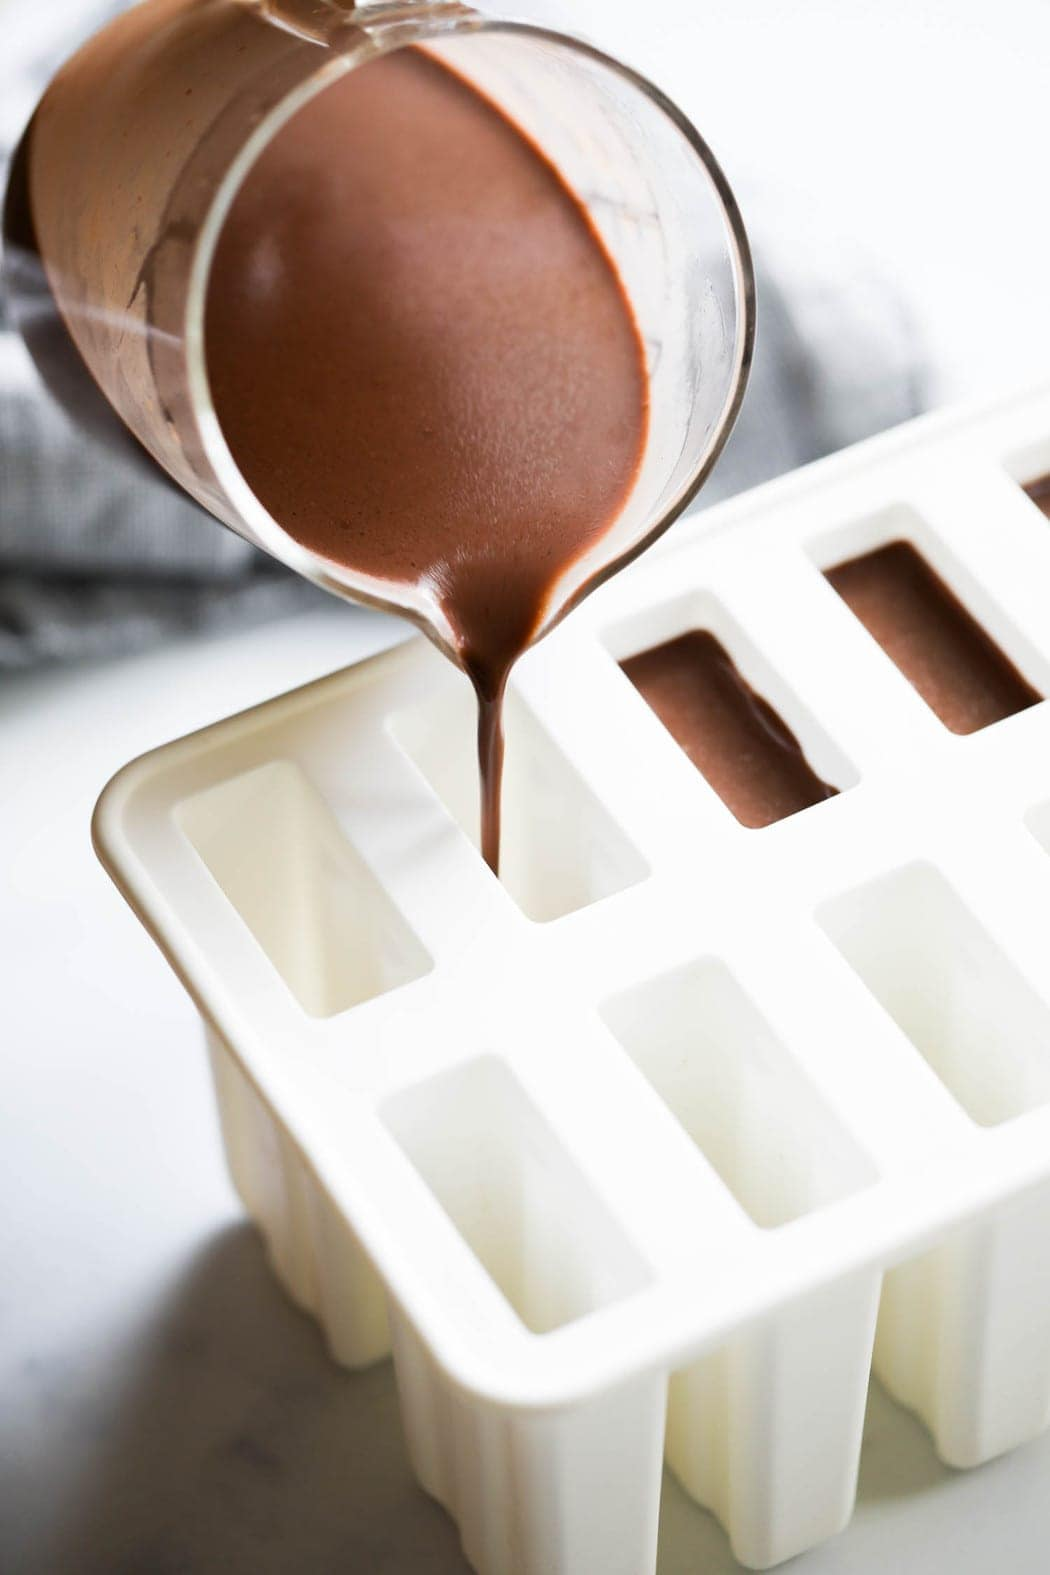 Creamy fudgesicle mixture being poured into popsicle molds